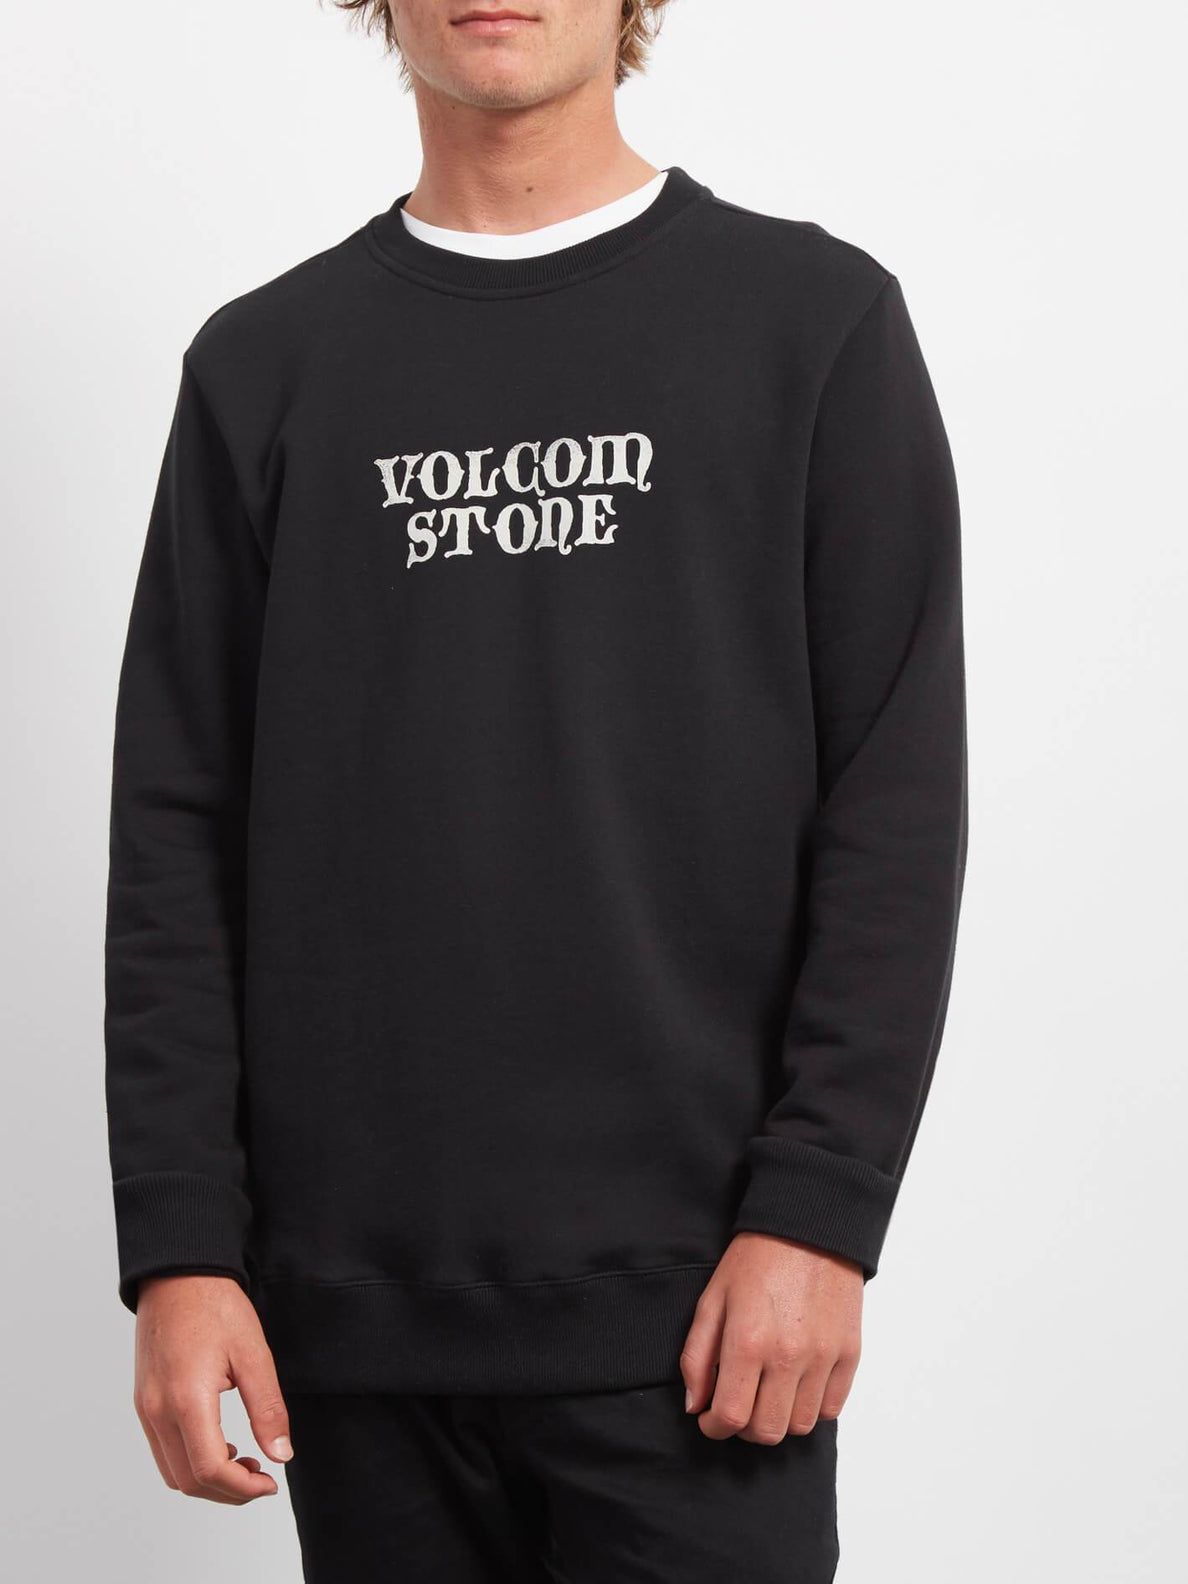 Supply Stone Sweaters - New Black